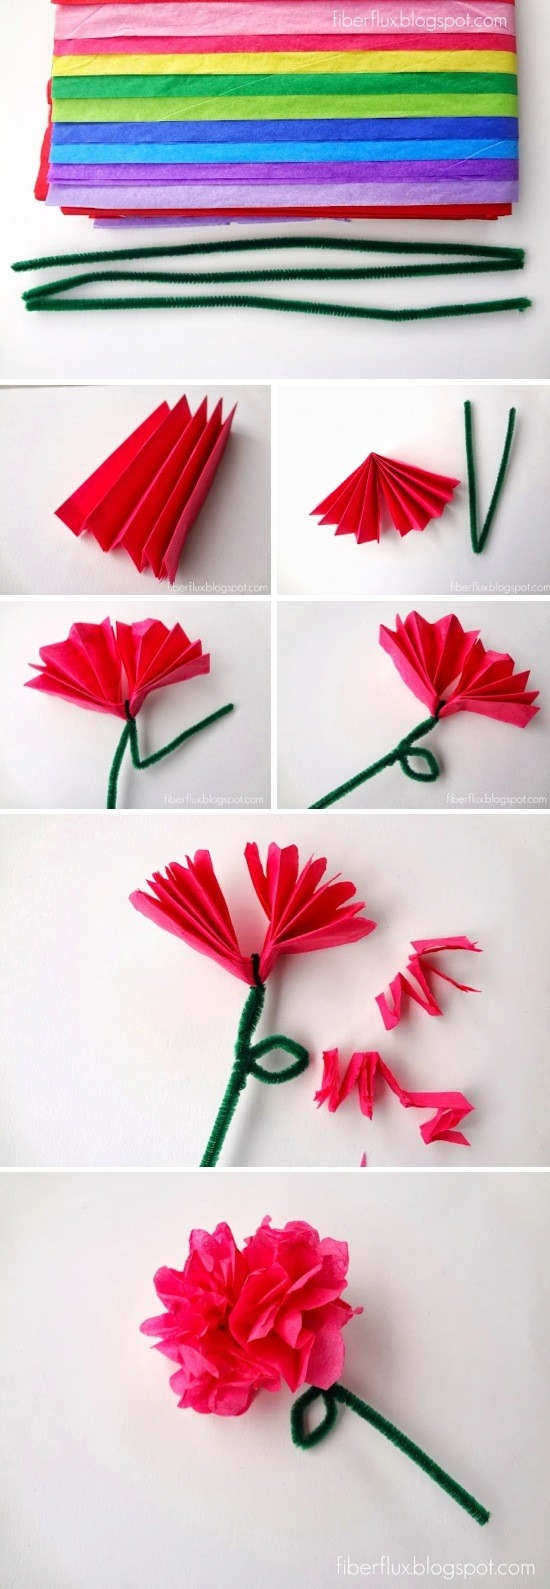 Easy Tissue Paper Flowers for How To Make Tissue Paper Crafts 26814